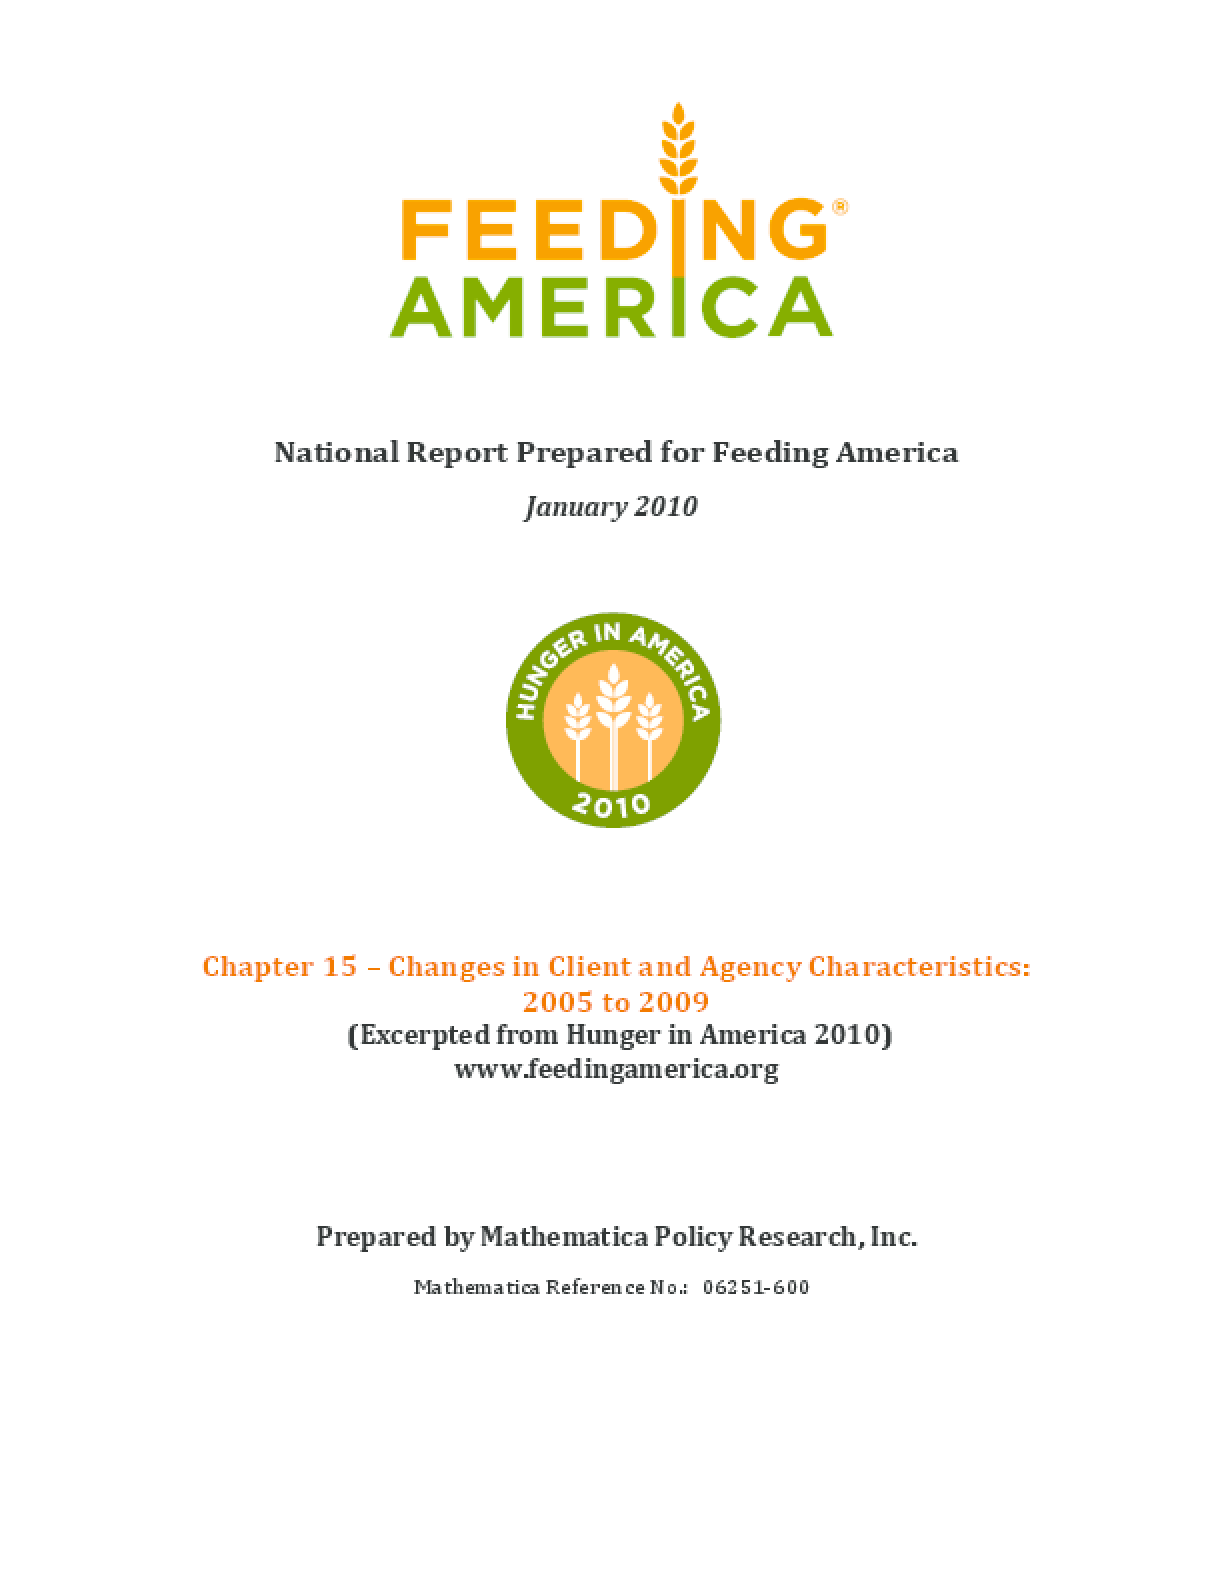 Changes in Feeding America Client and Agency Characteristics: 2005 to 2009